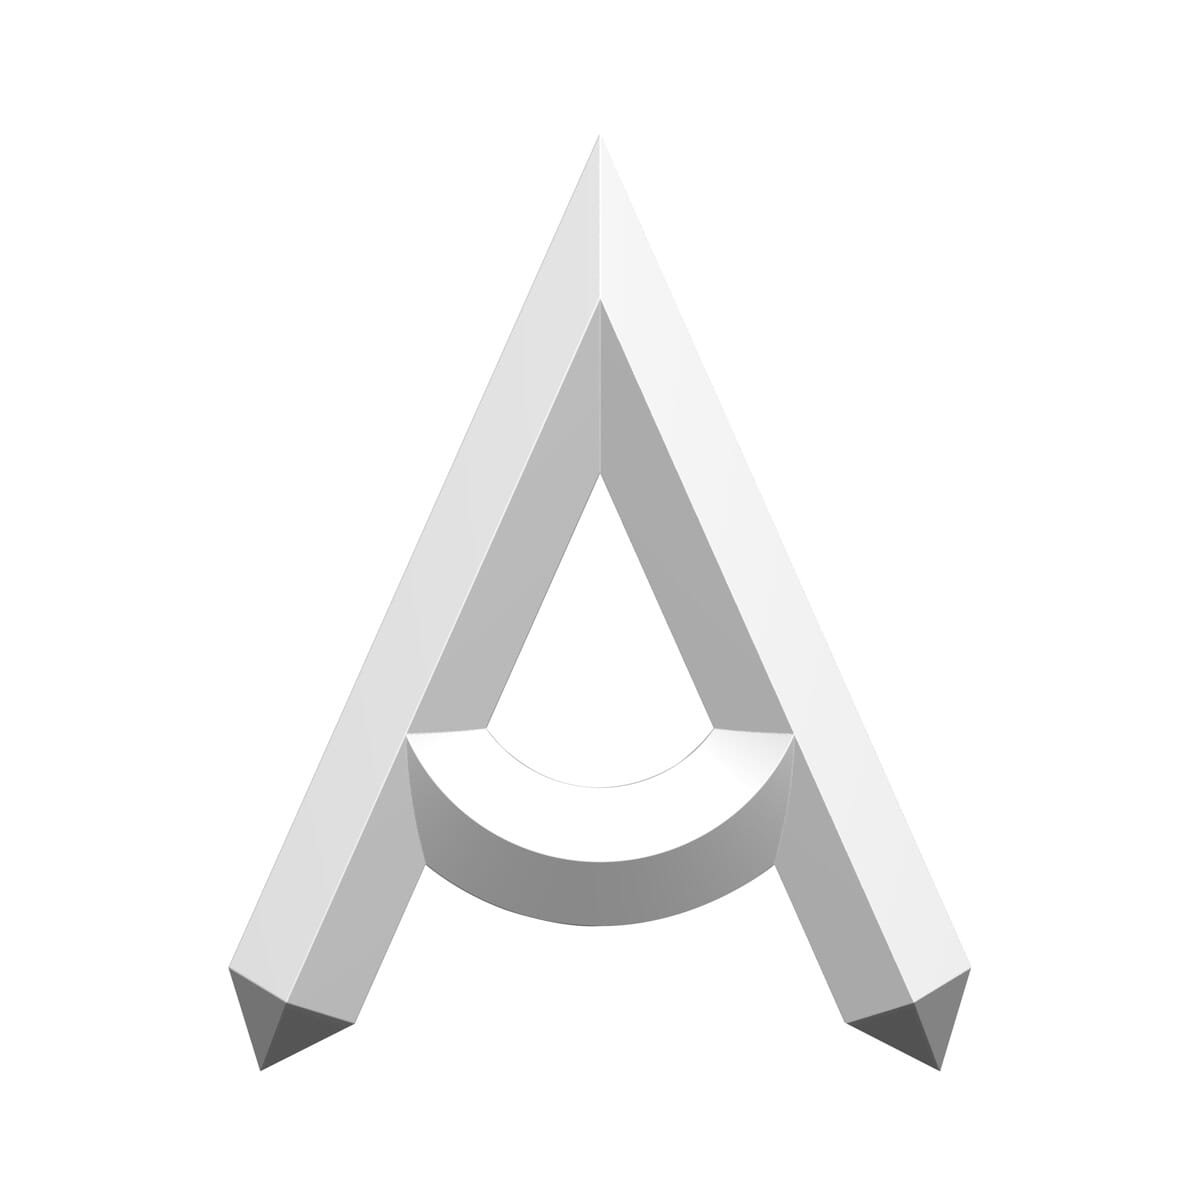 M4 x 25.00mm Hexalobular / Torx Low Cap Head Screws (ISO 14580) - Thread Locking A2 Stainless Steel